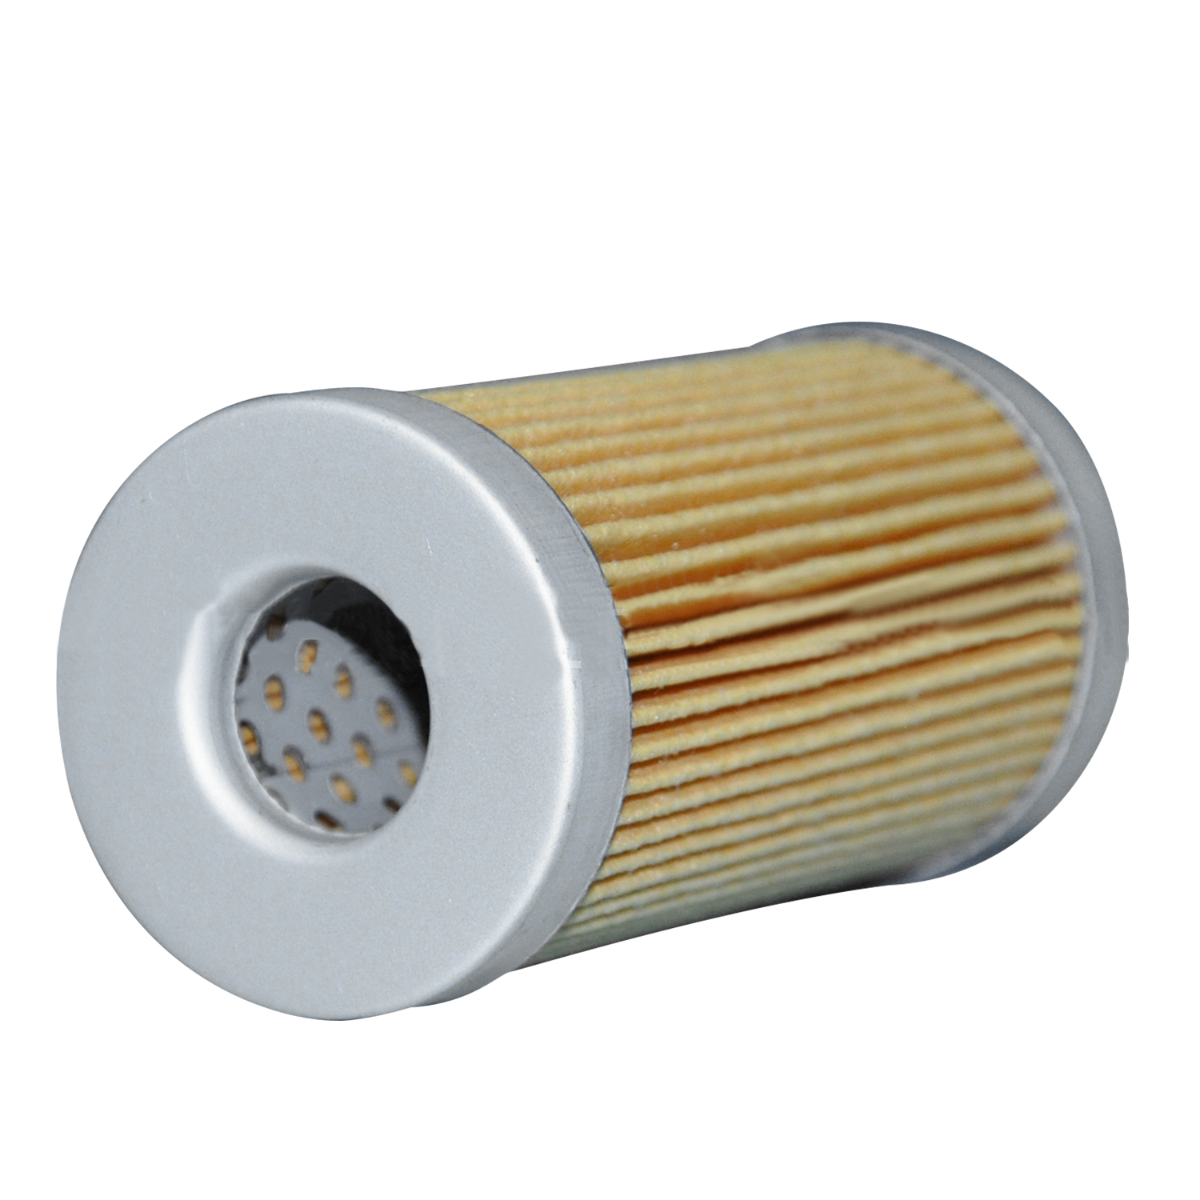 Fuel Filter FF5103 Compatible With Kubota Tractor L235 L2250 L2650 L275 L2850 L2900 L2950 L3130DT L3130HST L4300DT L4330DT